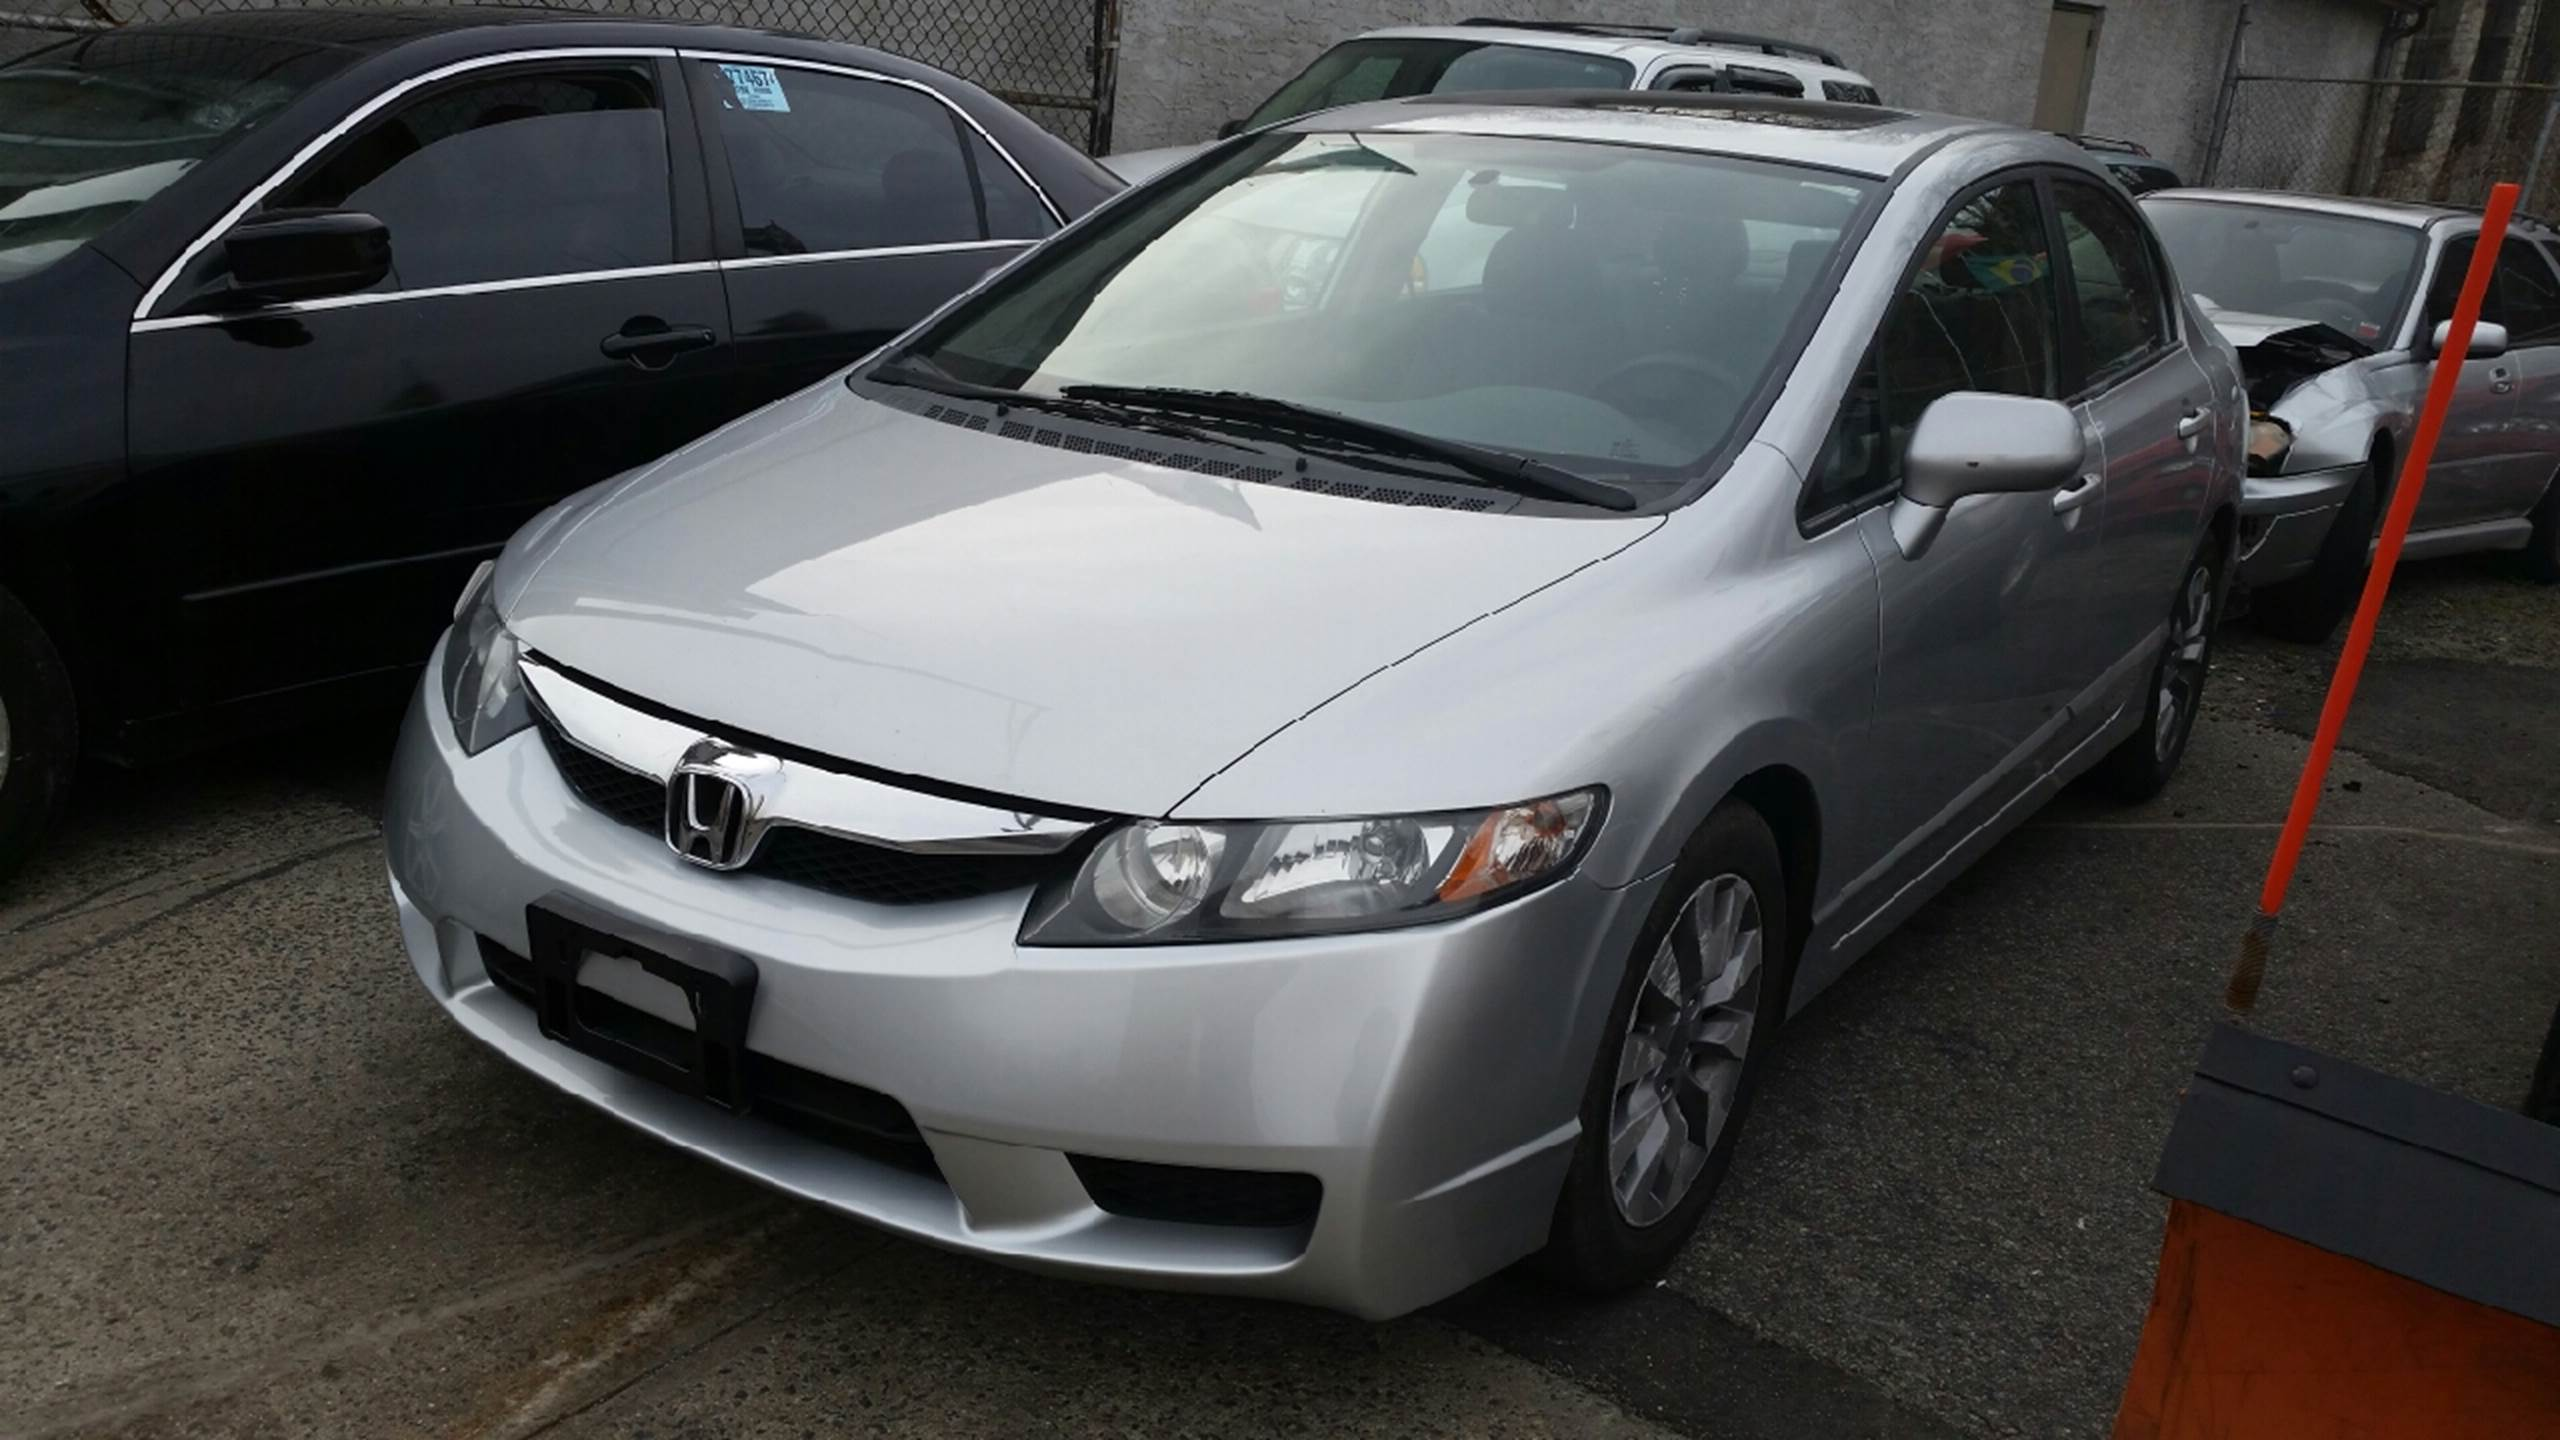 2009 honda civic for sale in yonkers ny. Black Bedroom Furniture Sets. Home Design Ideas